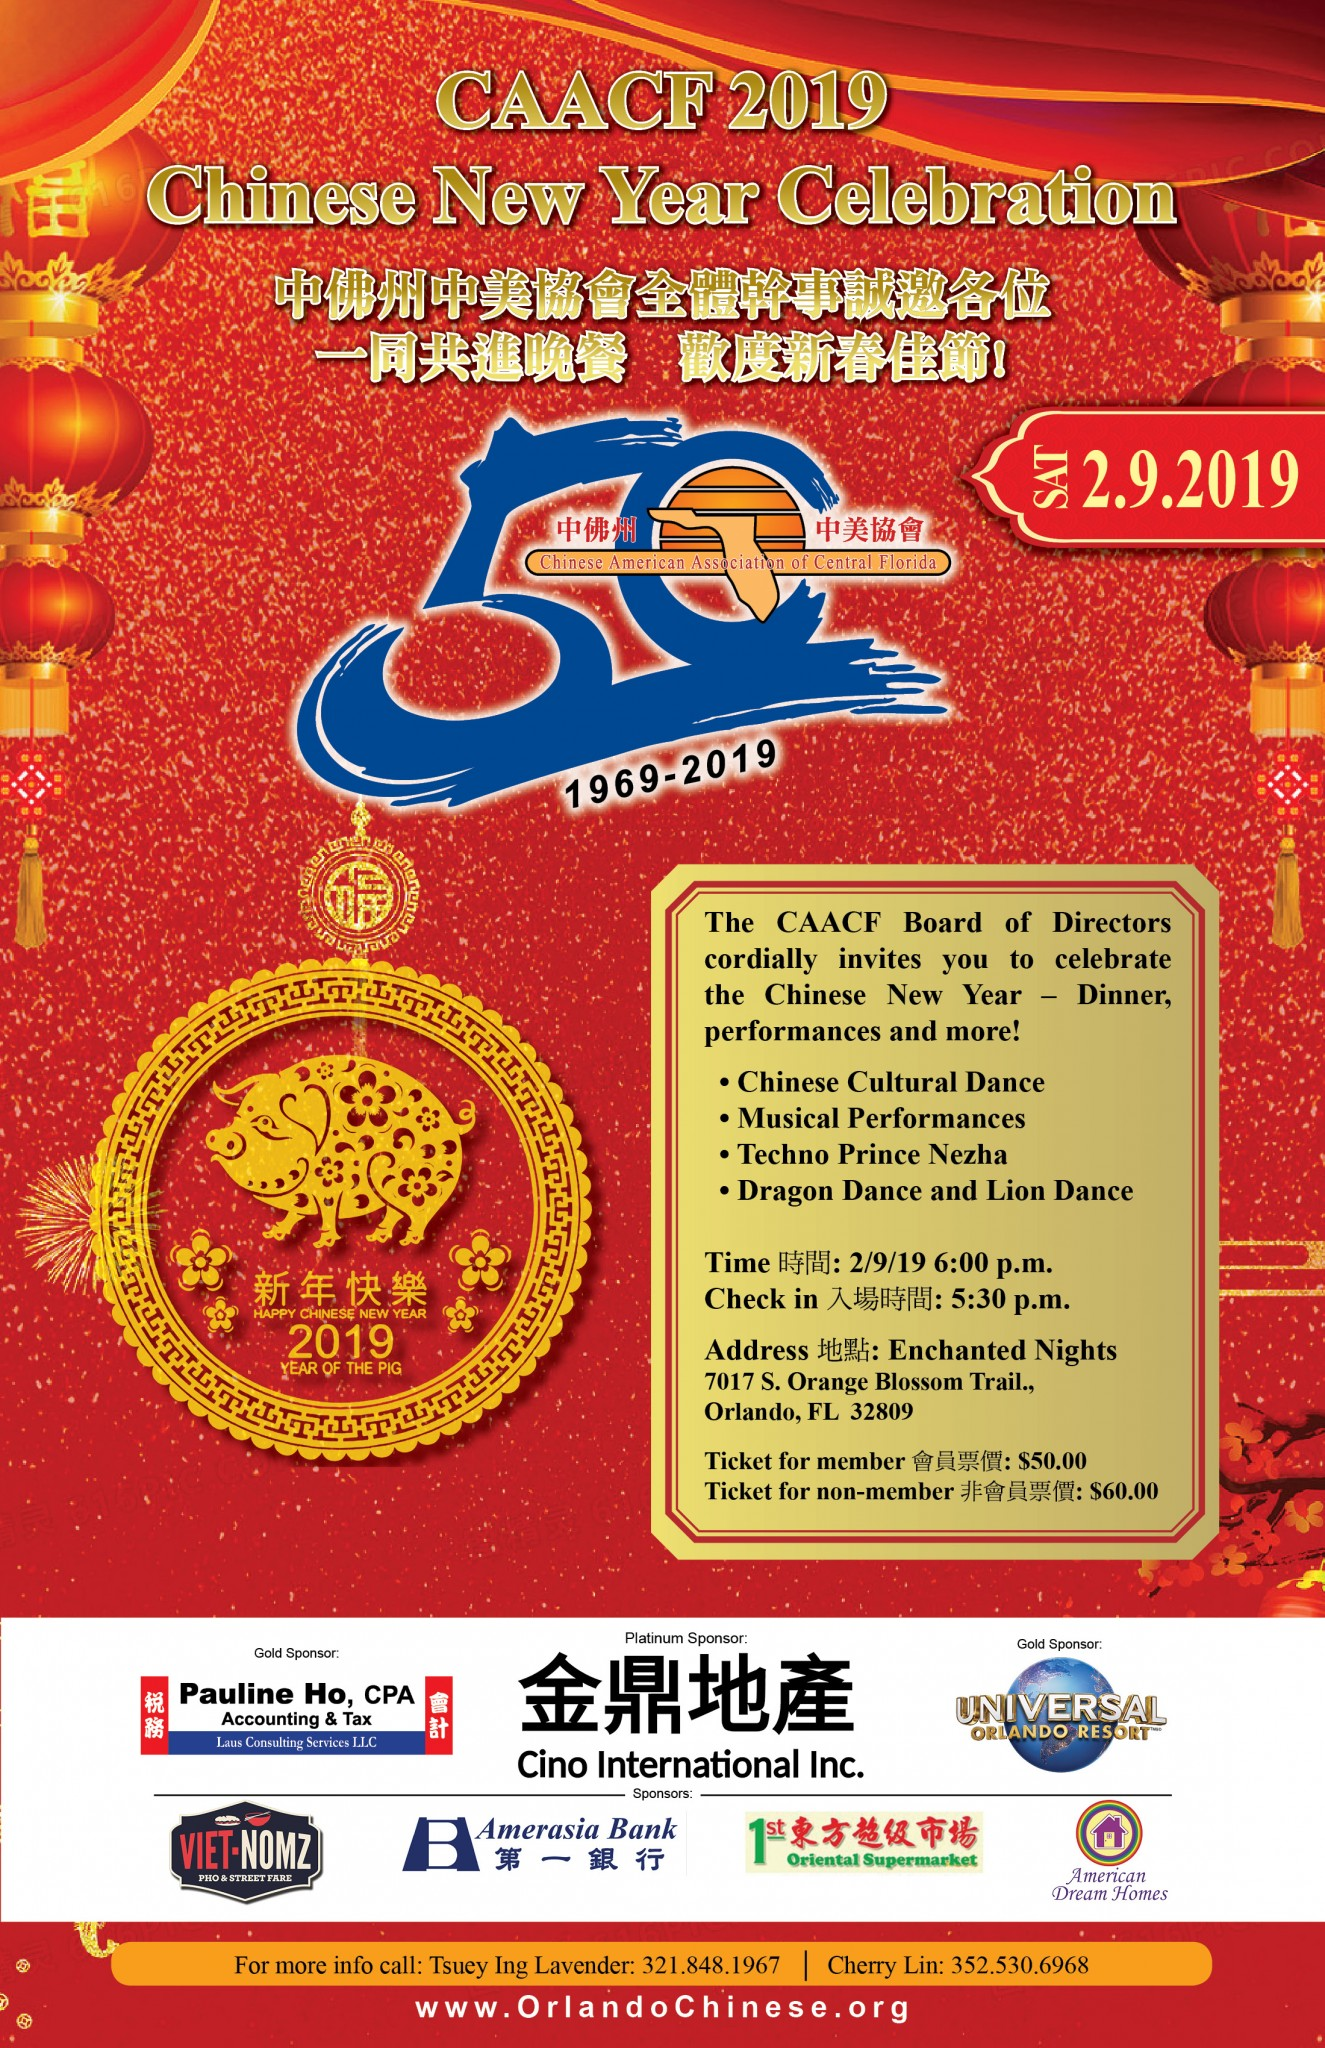 CAACF 2019 Chinese New Year Celebration